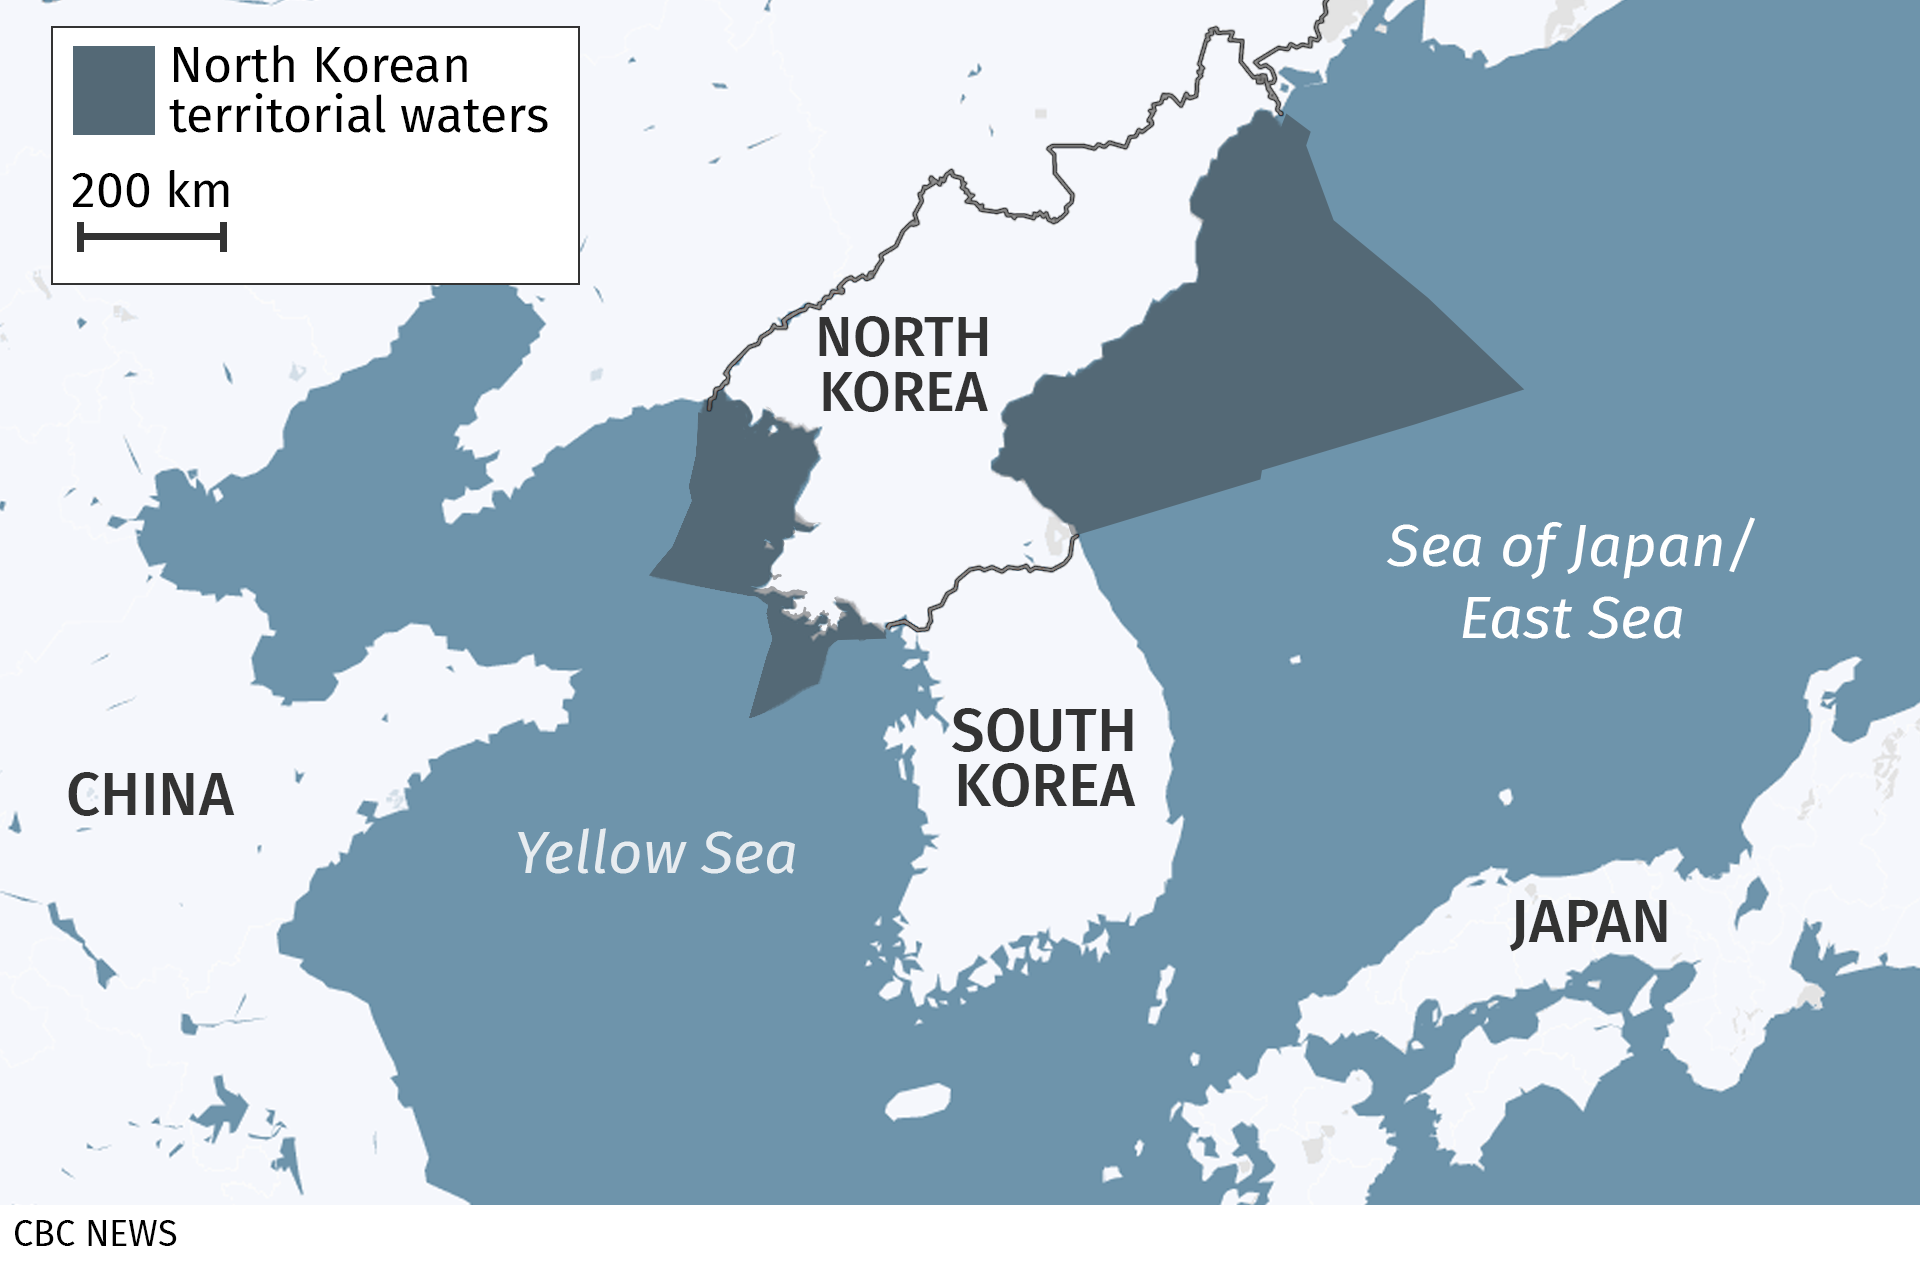 Under UN sanctions imposed in 2017, North Korea is not allowed to sell foreign fishing rights in its national waters. Canada is one of the countries helping enforce those sanctions.